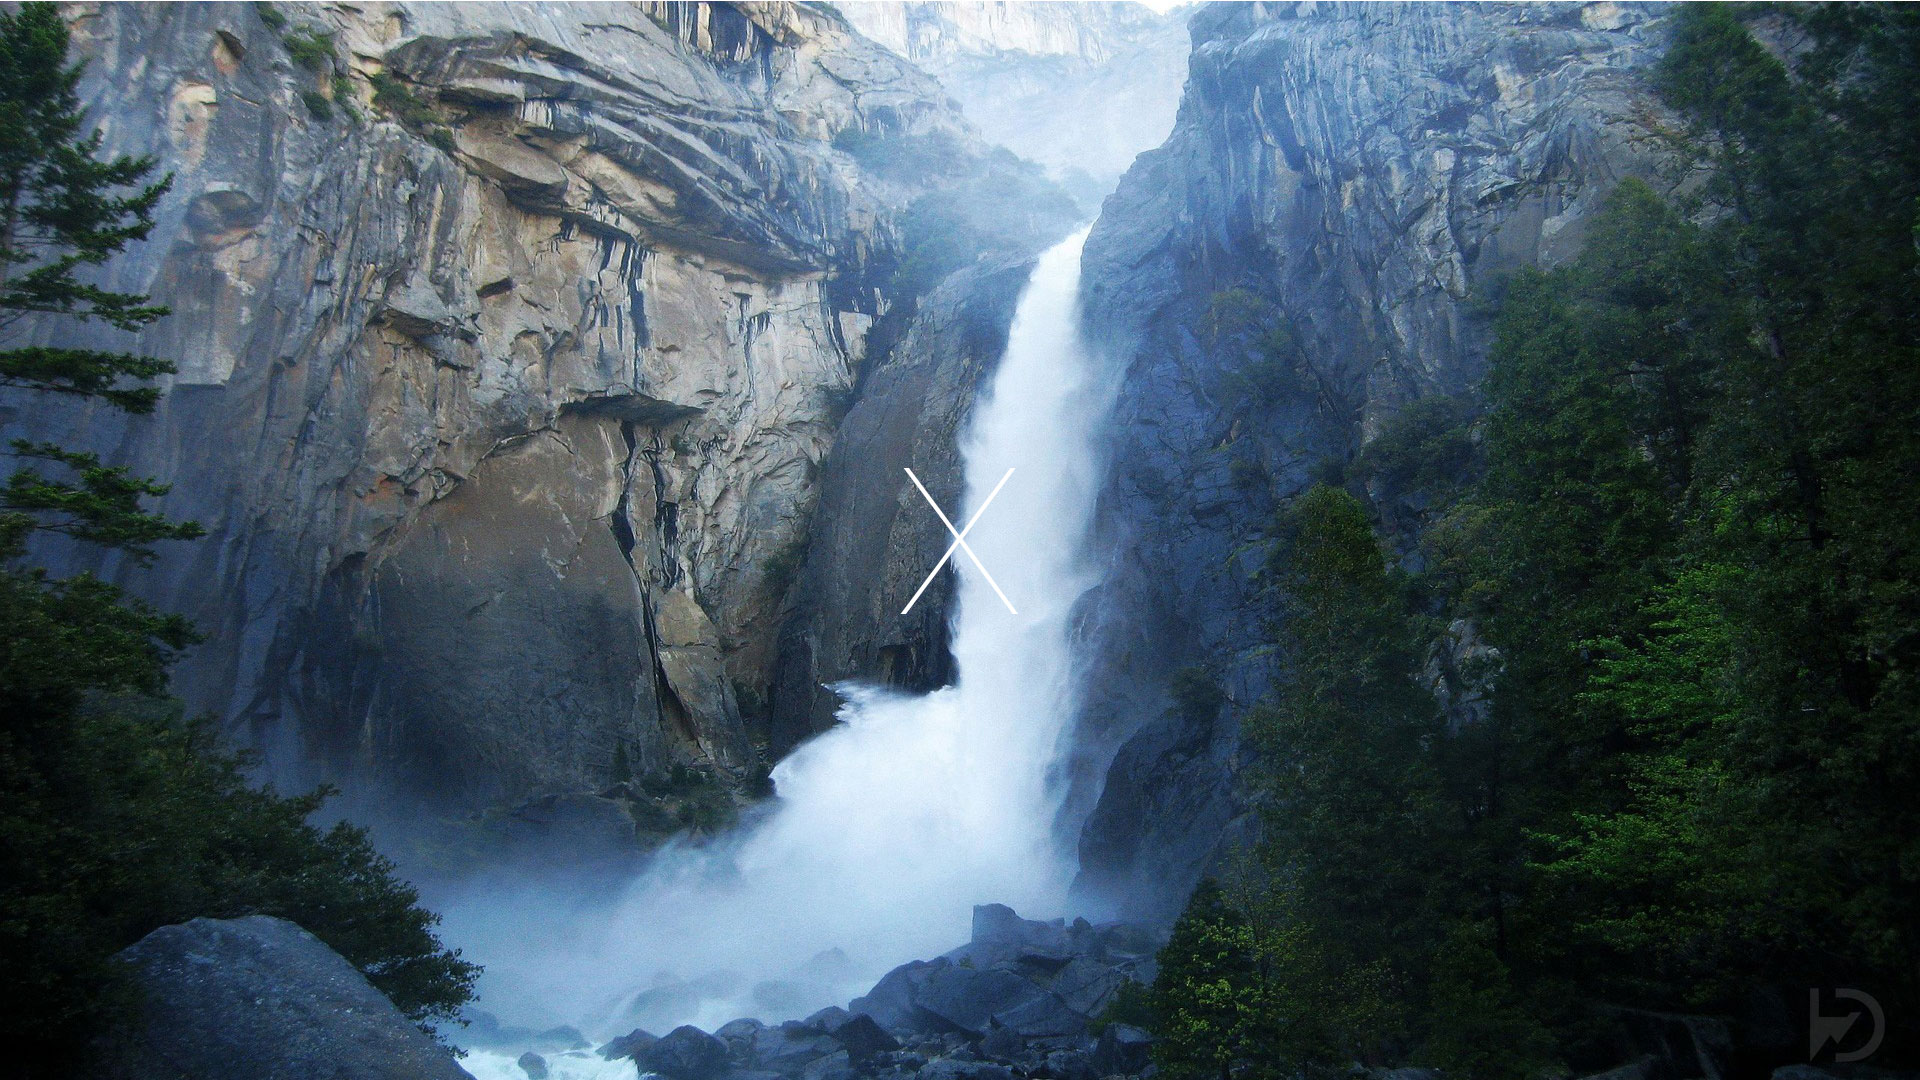 Hd wallpaper yosemite - Official Os X Yosemite Hd Wallpapers Free Download